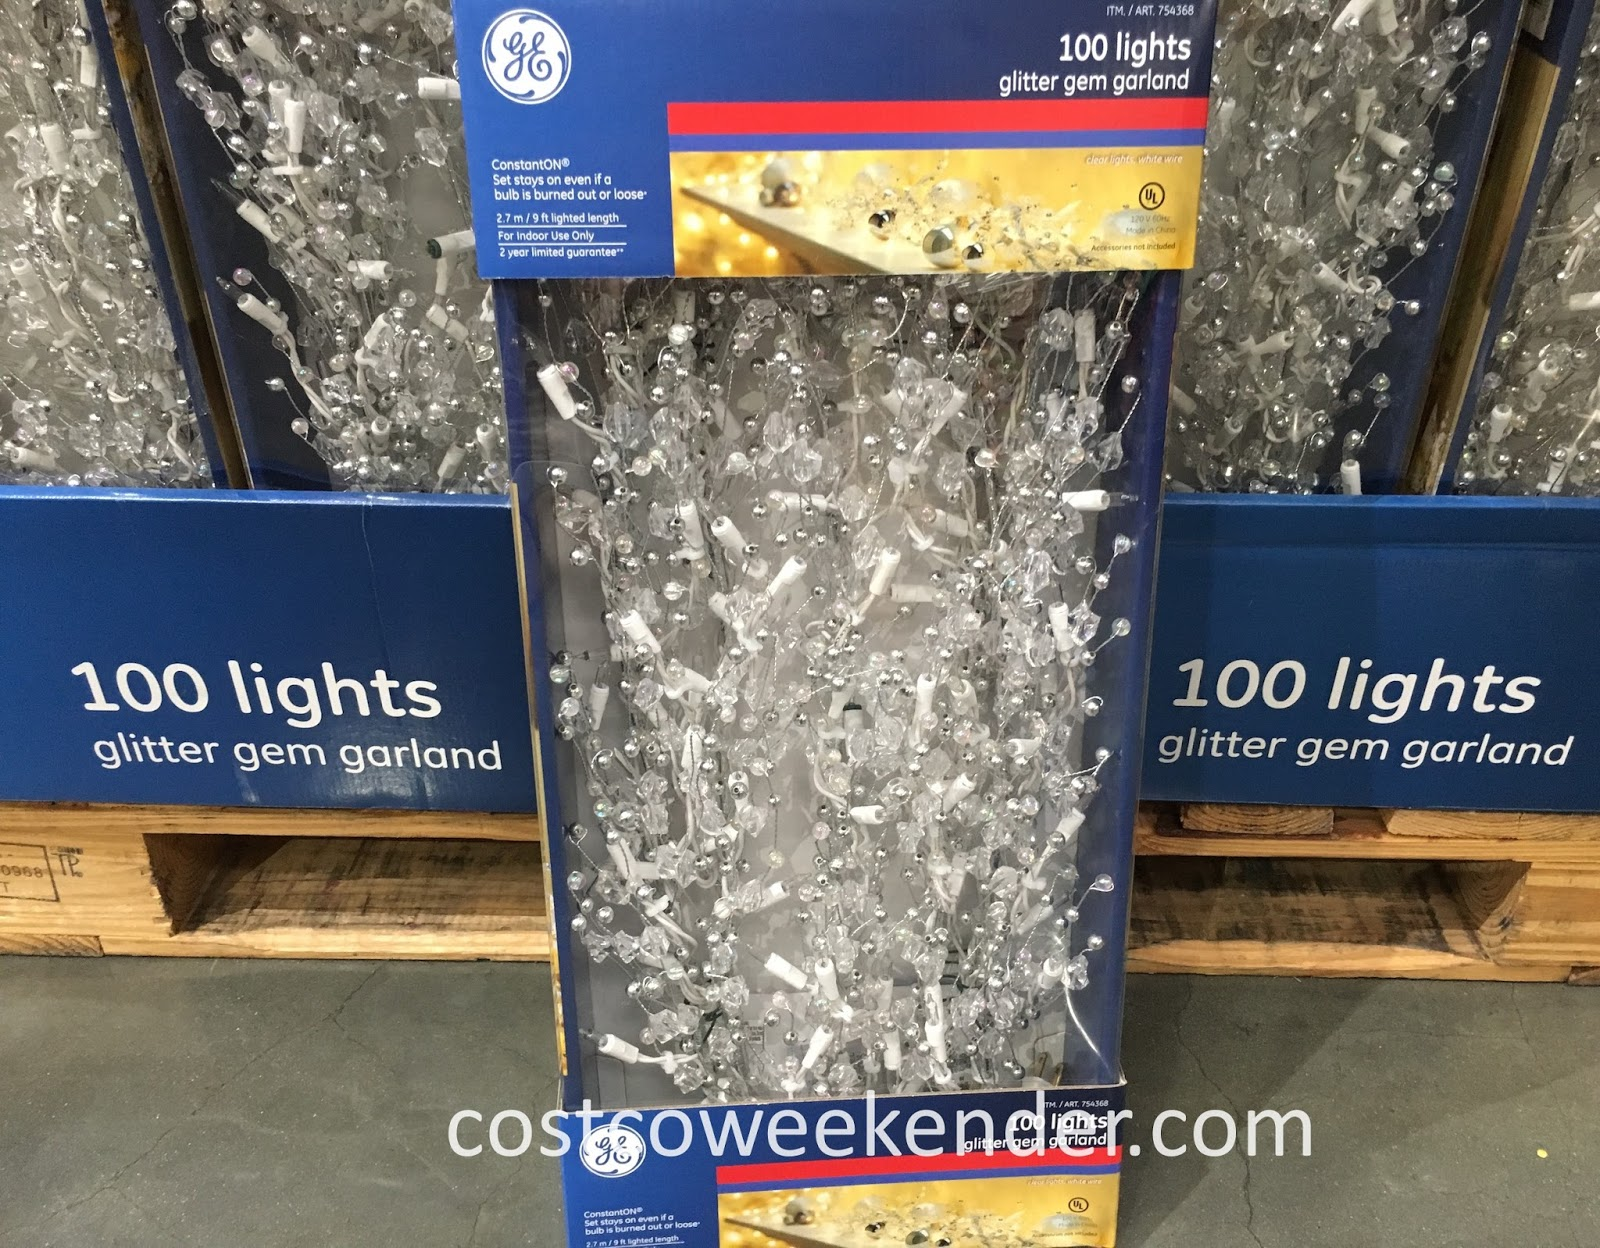 Brighten up your home with the GE Glitter Gem Garland